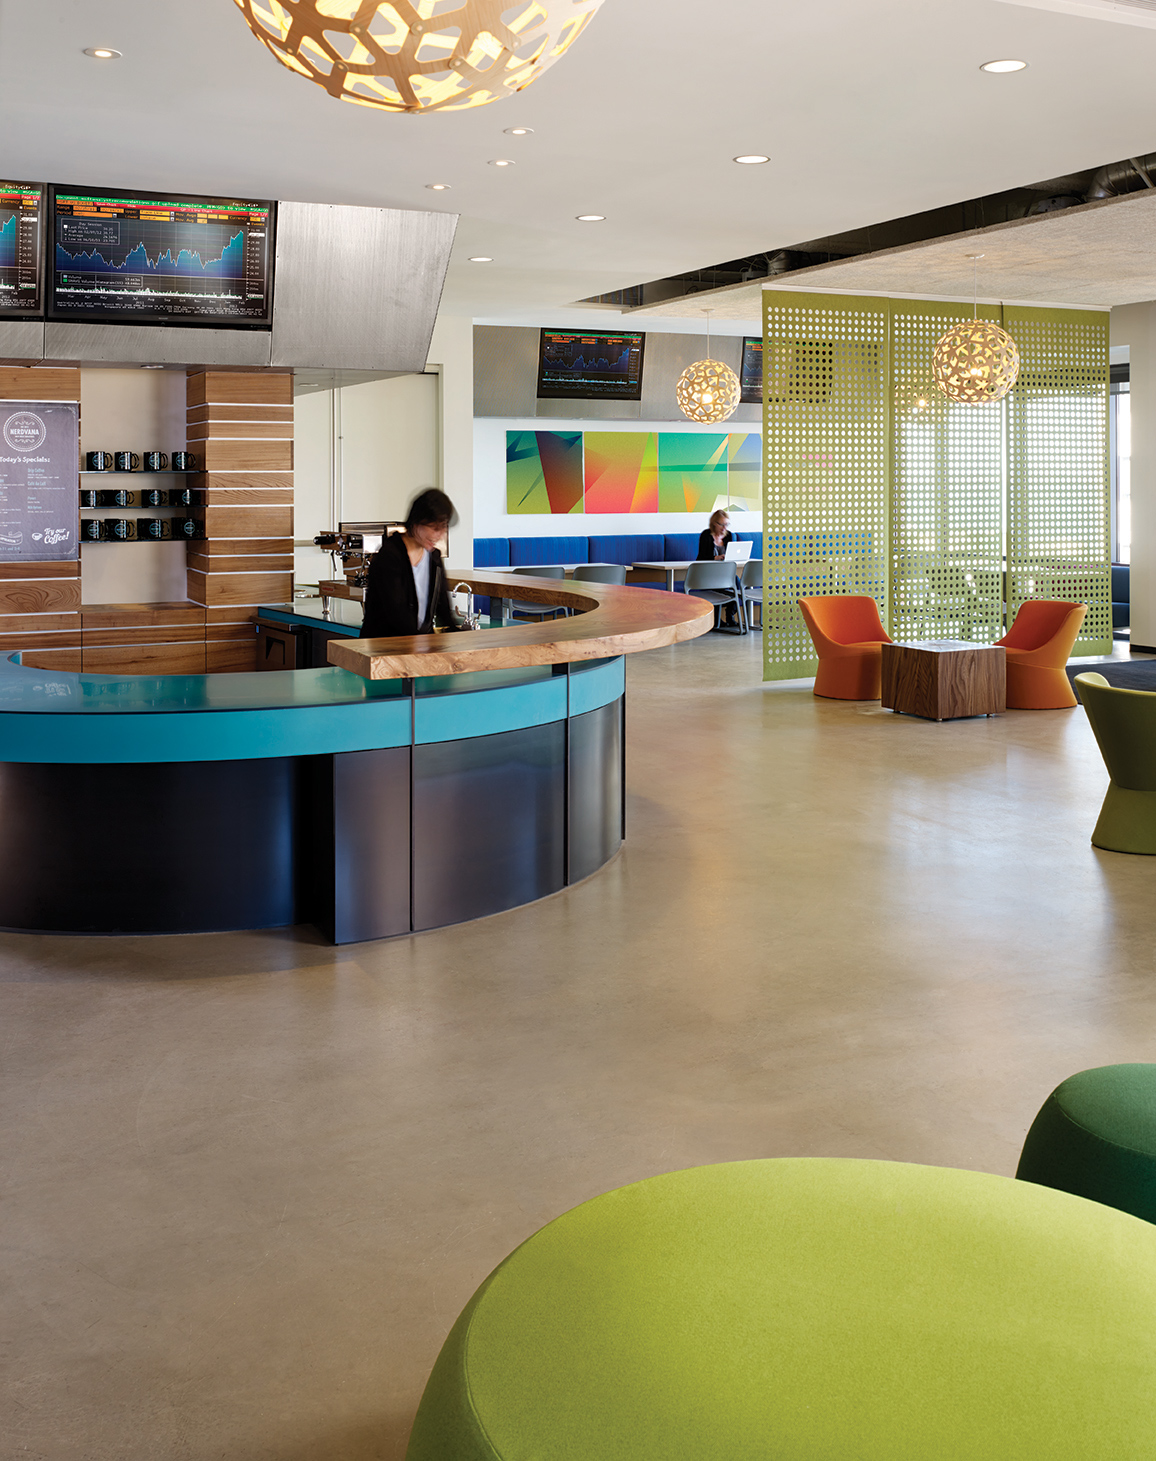 New Relic Headquarters by Quezada Architecture (Fred Quezada, Cecilia Quezada, Ed Tingley)